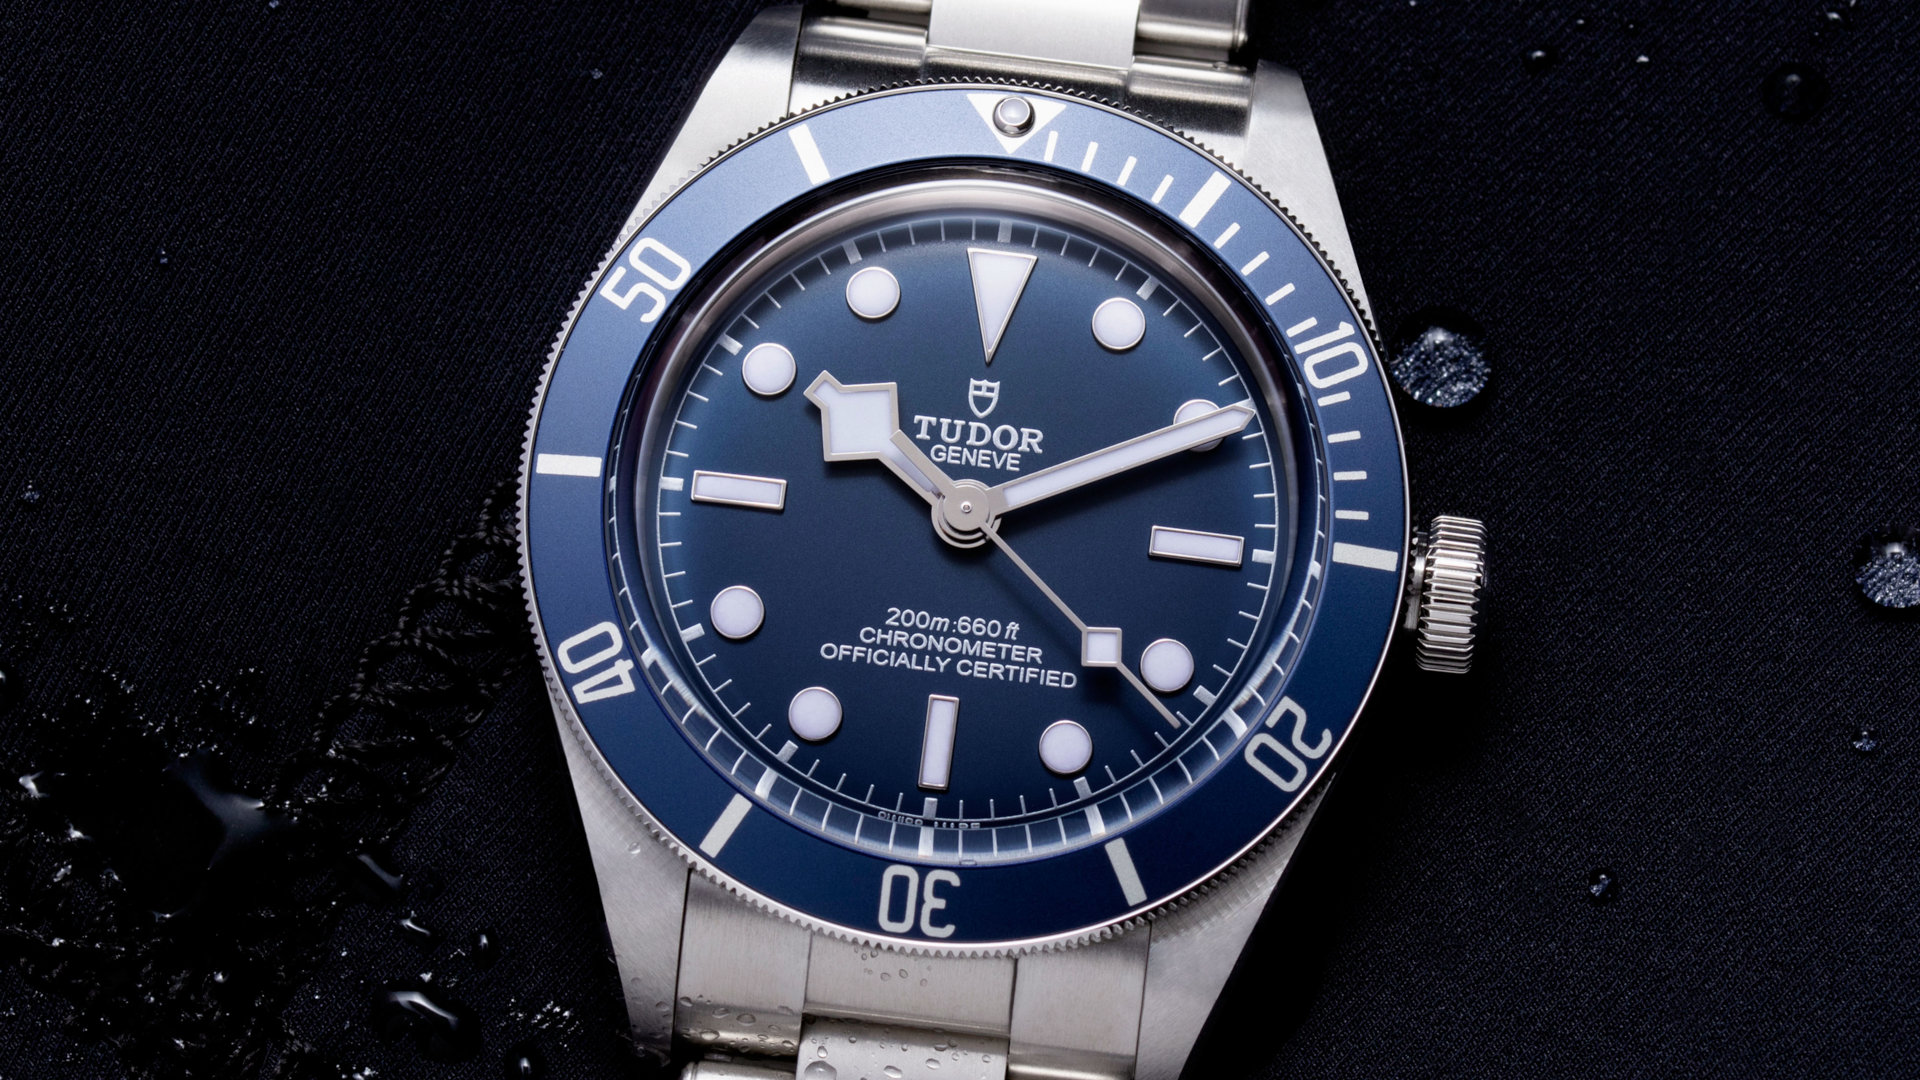 Tudor's Black Bay Fifty-Eight appears in Navy Blue and the watch crowds go wild!